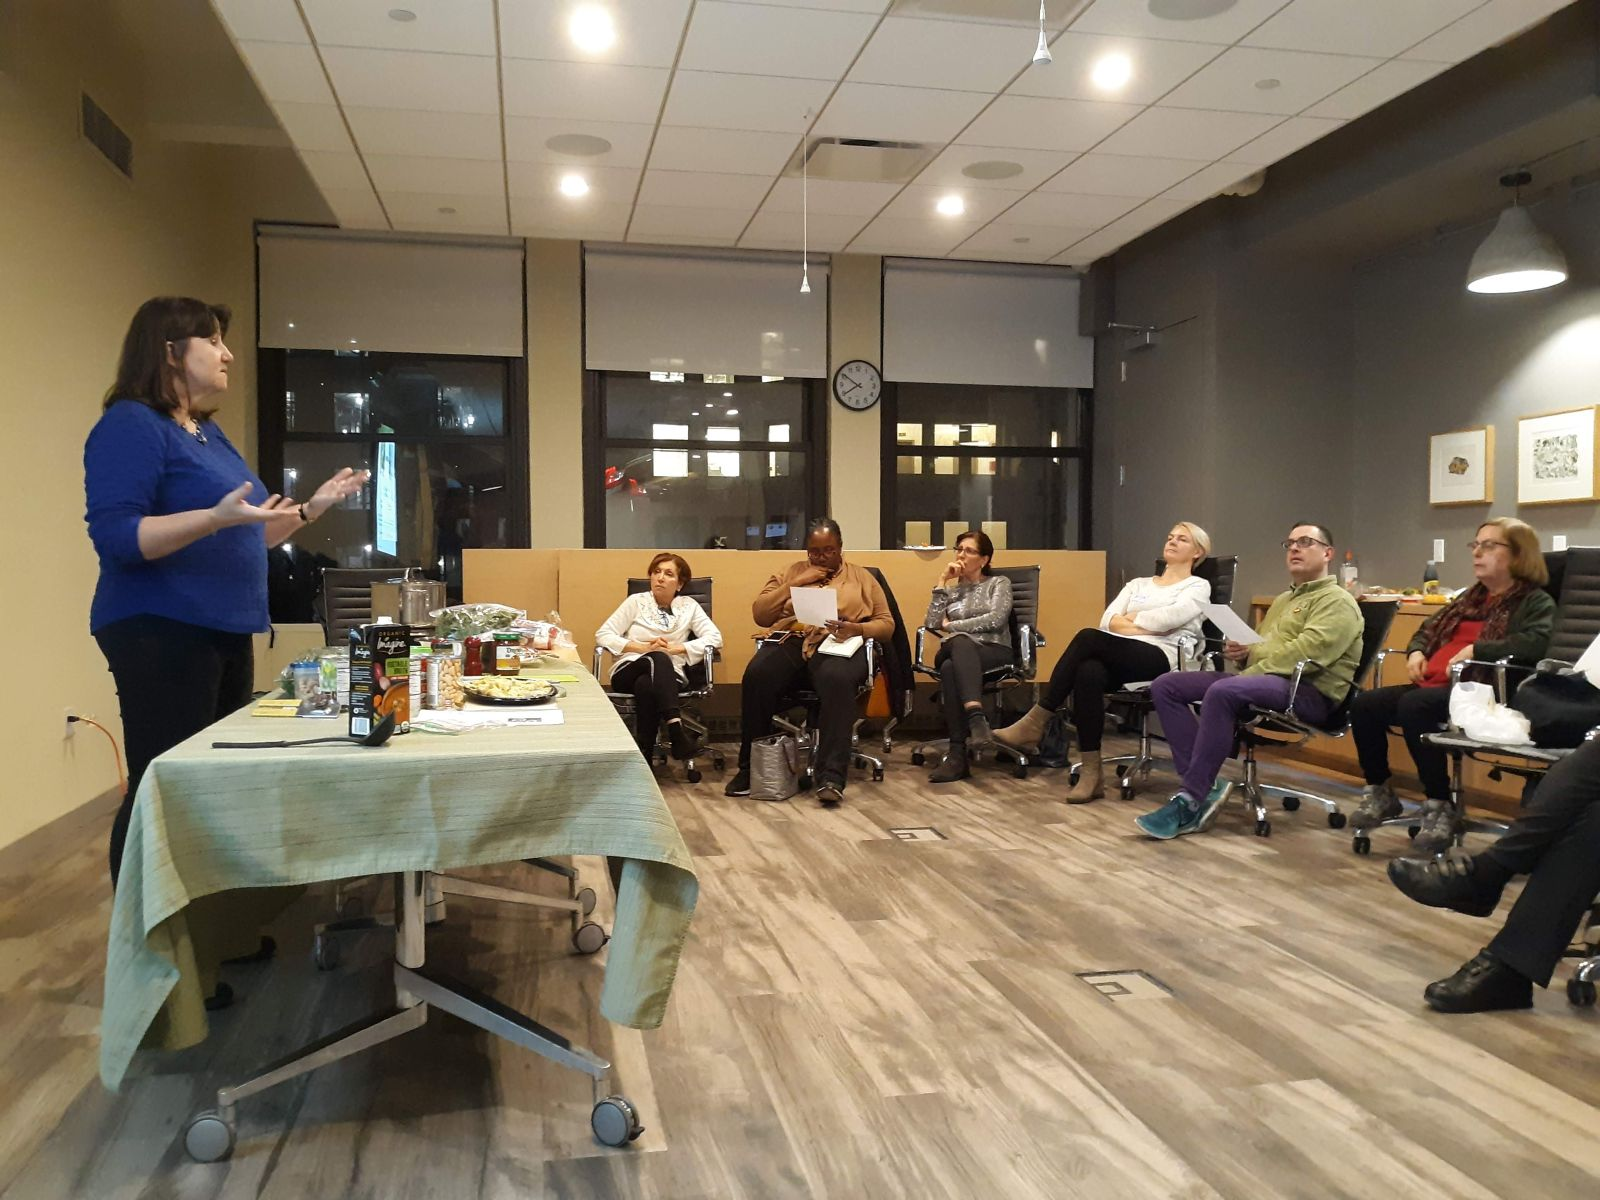 Laurie Courage demonstrates WFPB cooking at December event